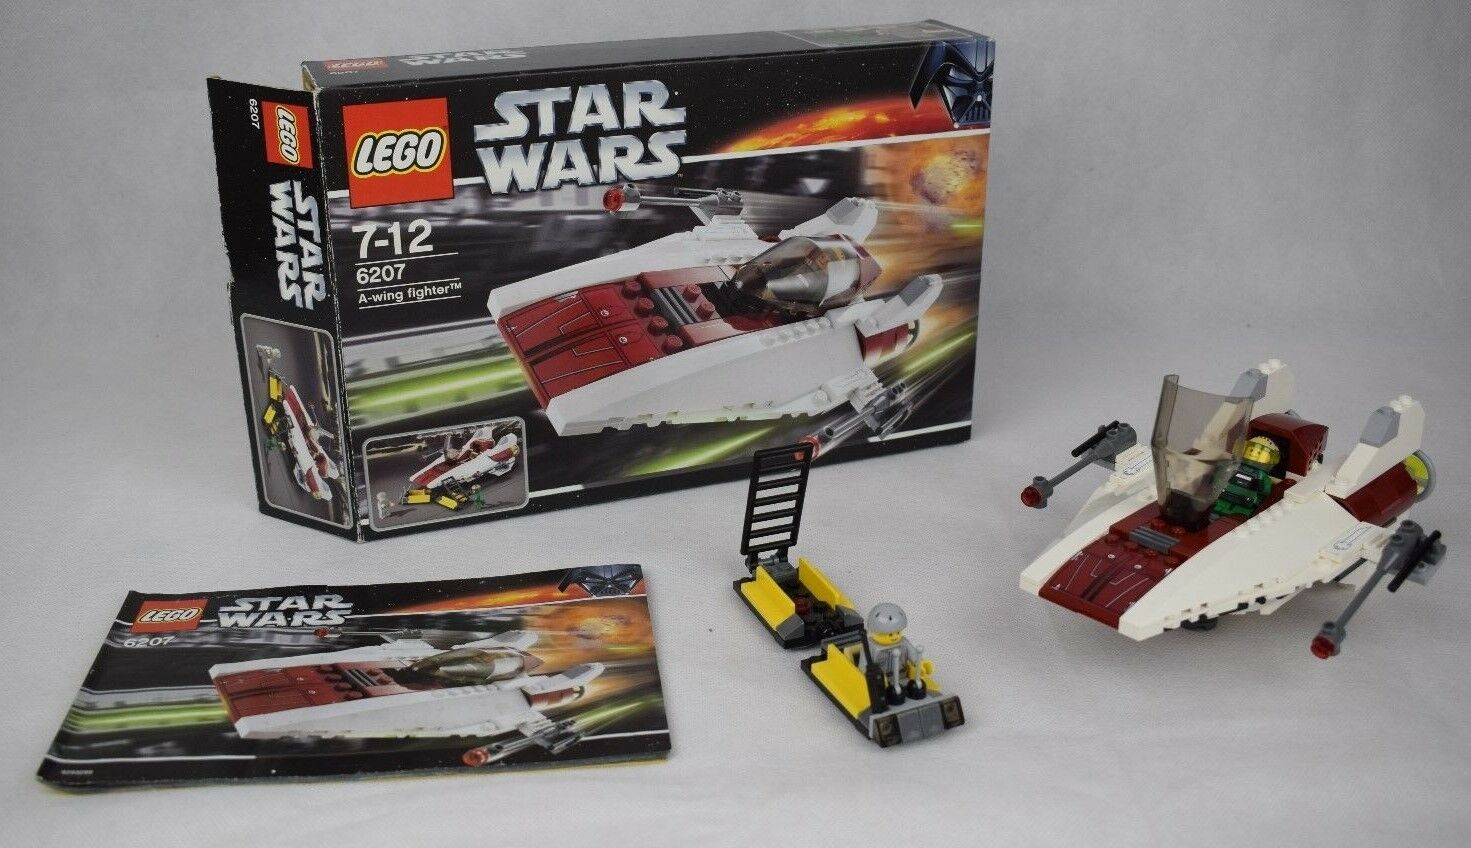 Lego Star Wars A wing Set 6207 100% Complete With Box Manual And Minifigures